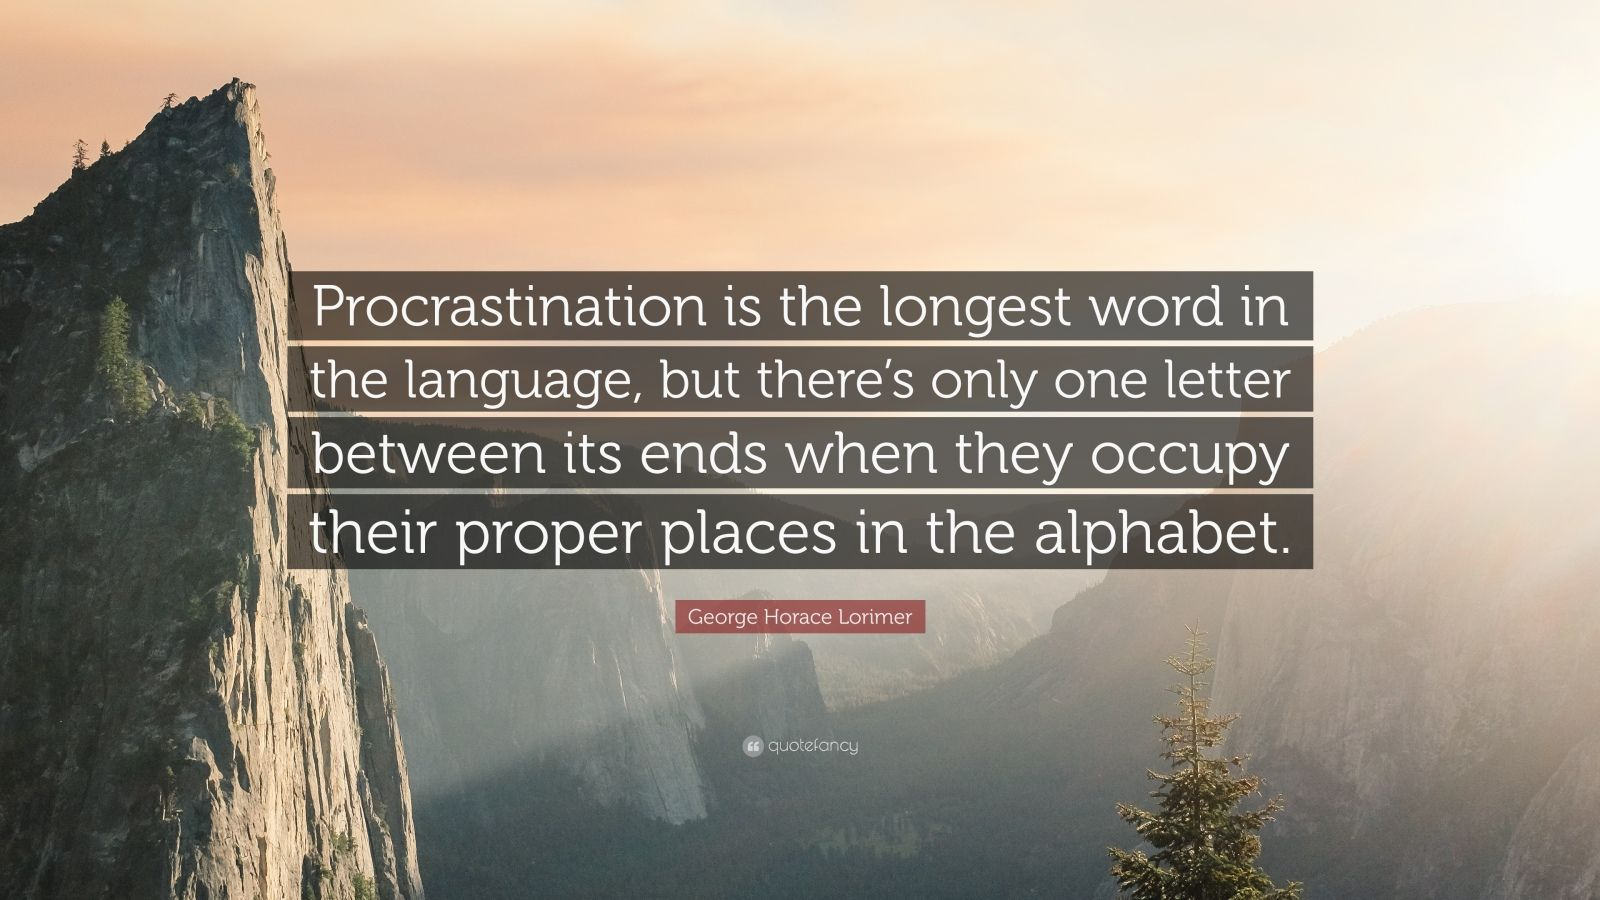 """George Horace Lorimer Quote: """"Procrastination is the longest word in the language, but there's only one letter between its ends when they occupy their proper places in the alphabet."""""""